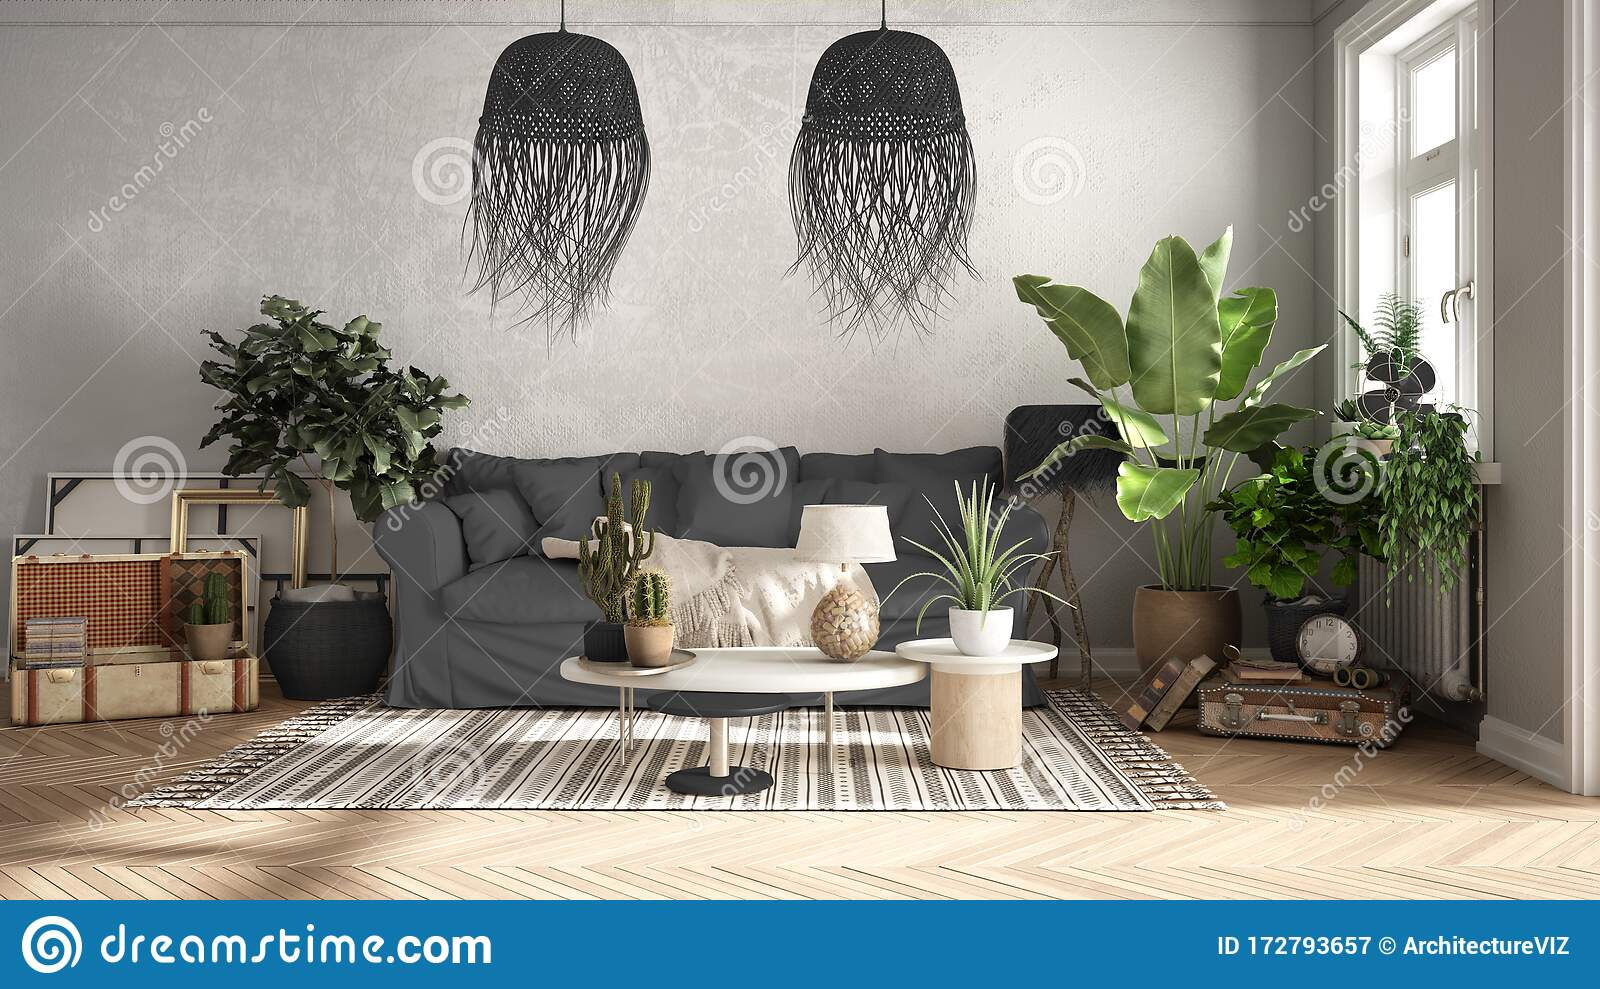 Vintage Old Style Living Room In Gray Tones Sofa Carpet Pillows And Rattan Pendant Lamps Tables With Decors And Potted Plants Stock Image Image Of Retro Closeup 172793657